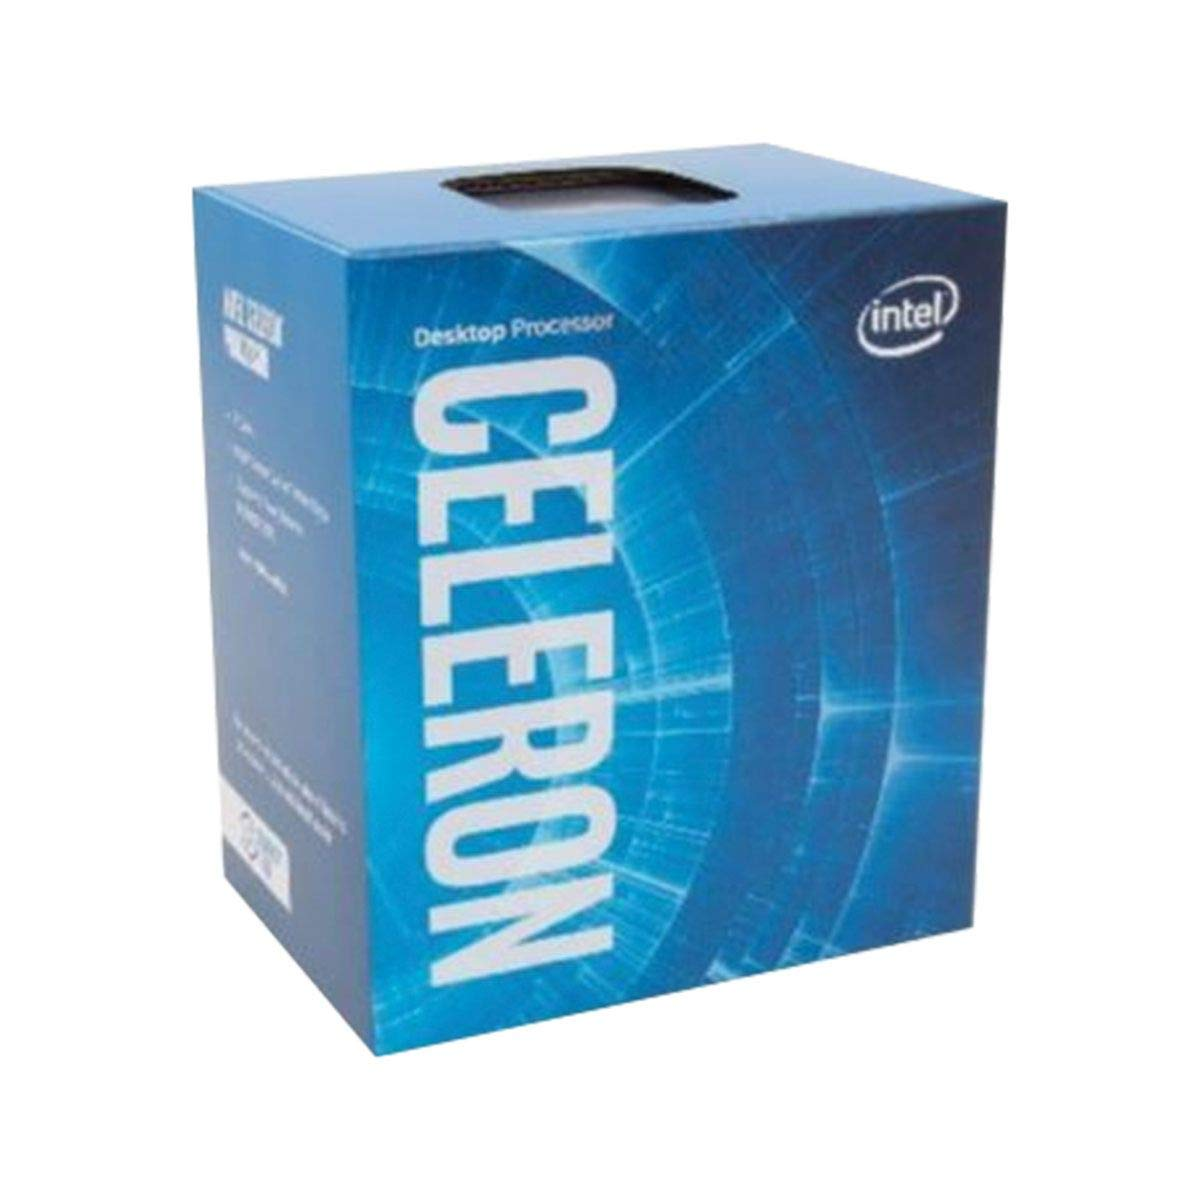 Intel BX80677G3930 7th Gen Celeron